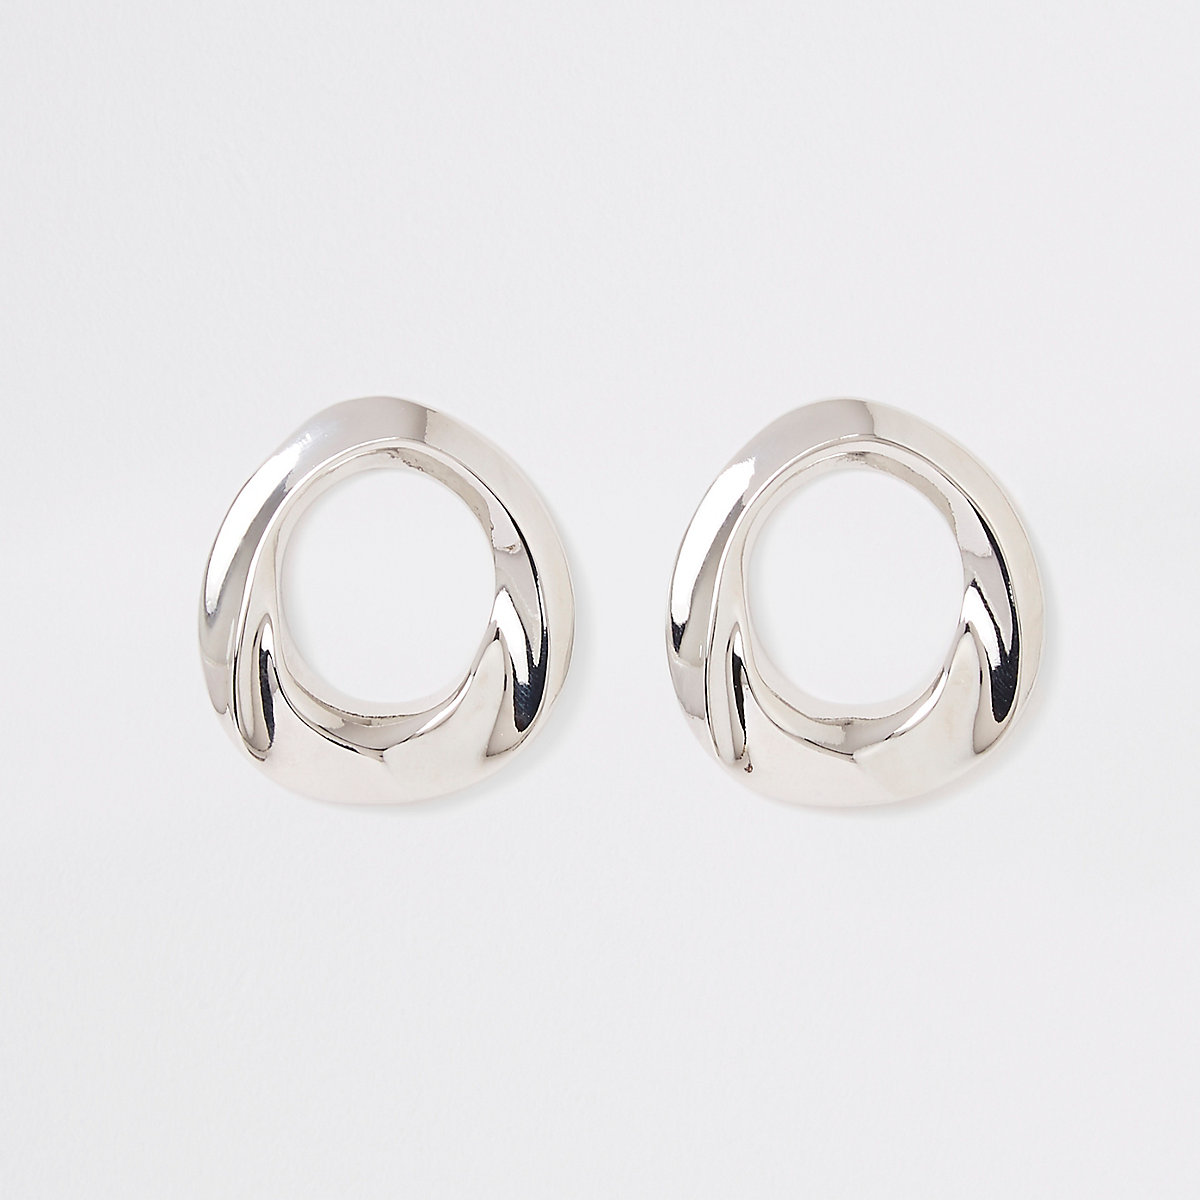 Silver color ring stud earrings